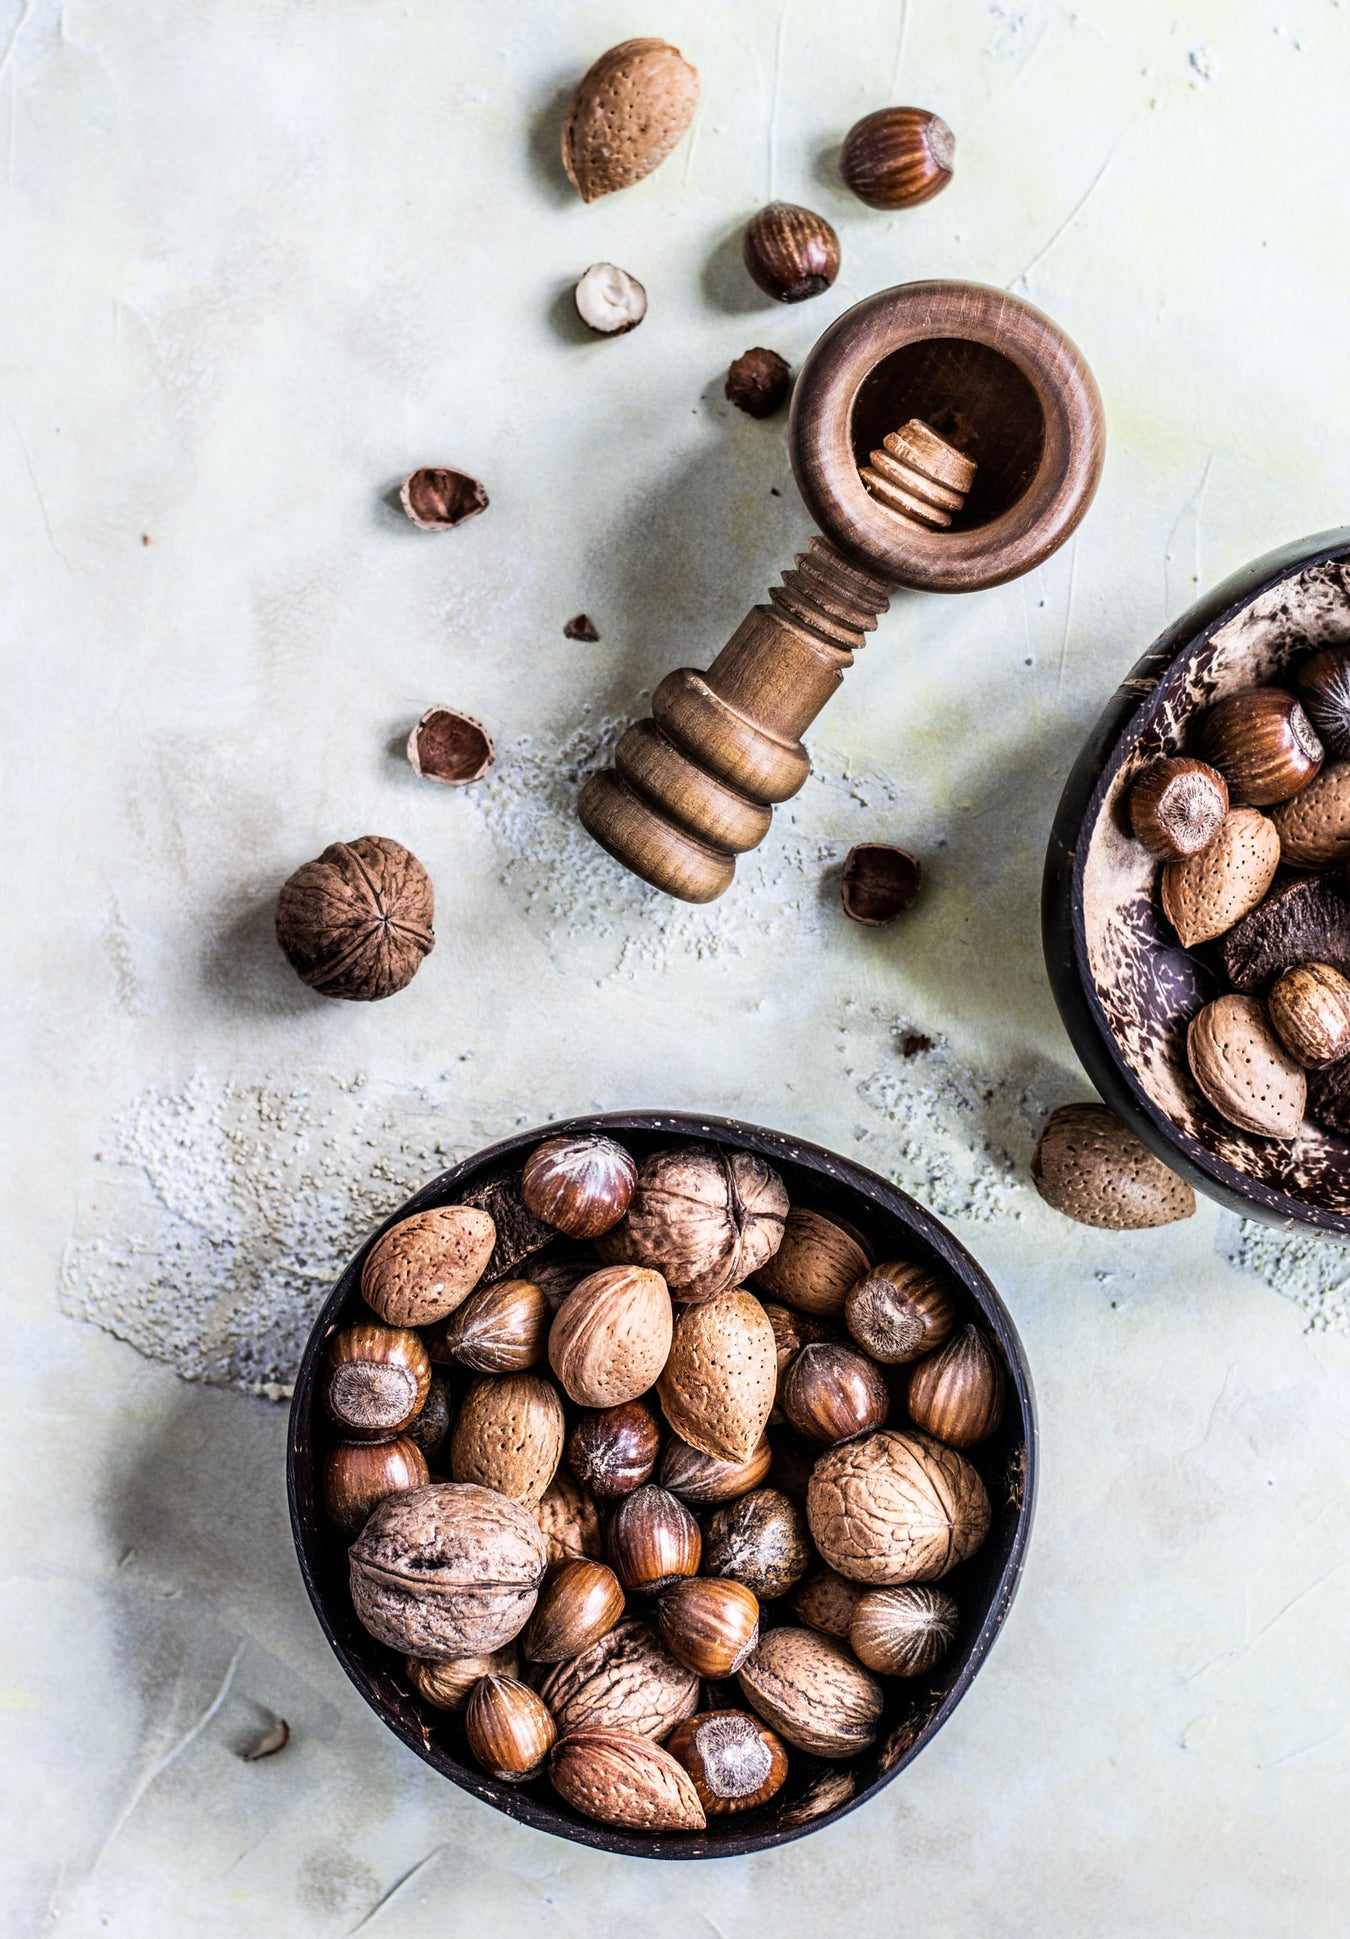 nuts-for-plant-based-mylk